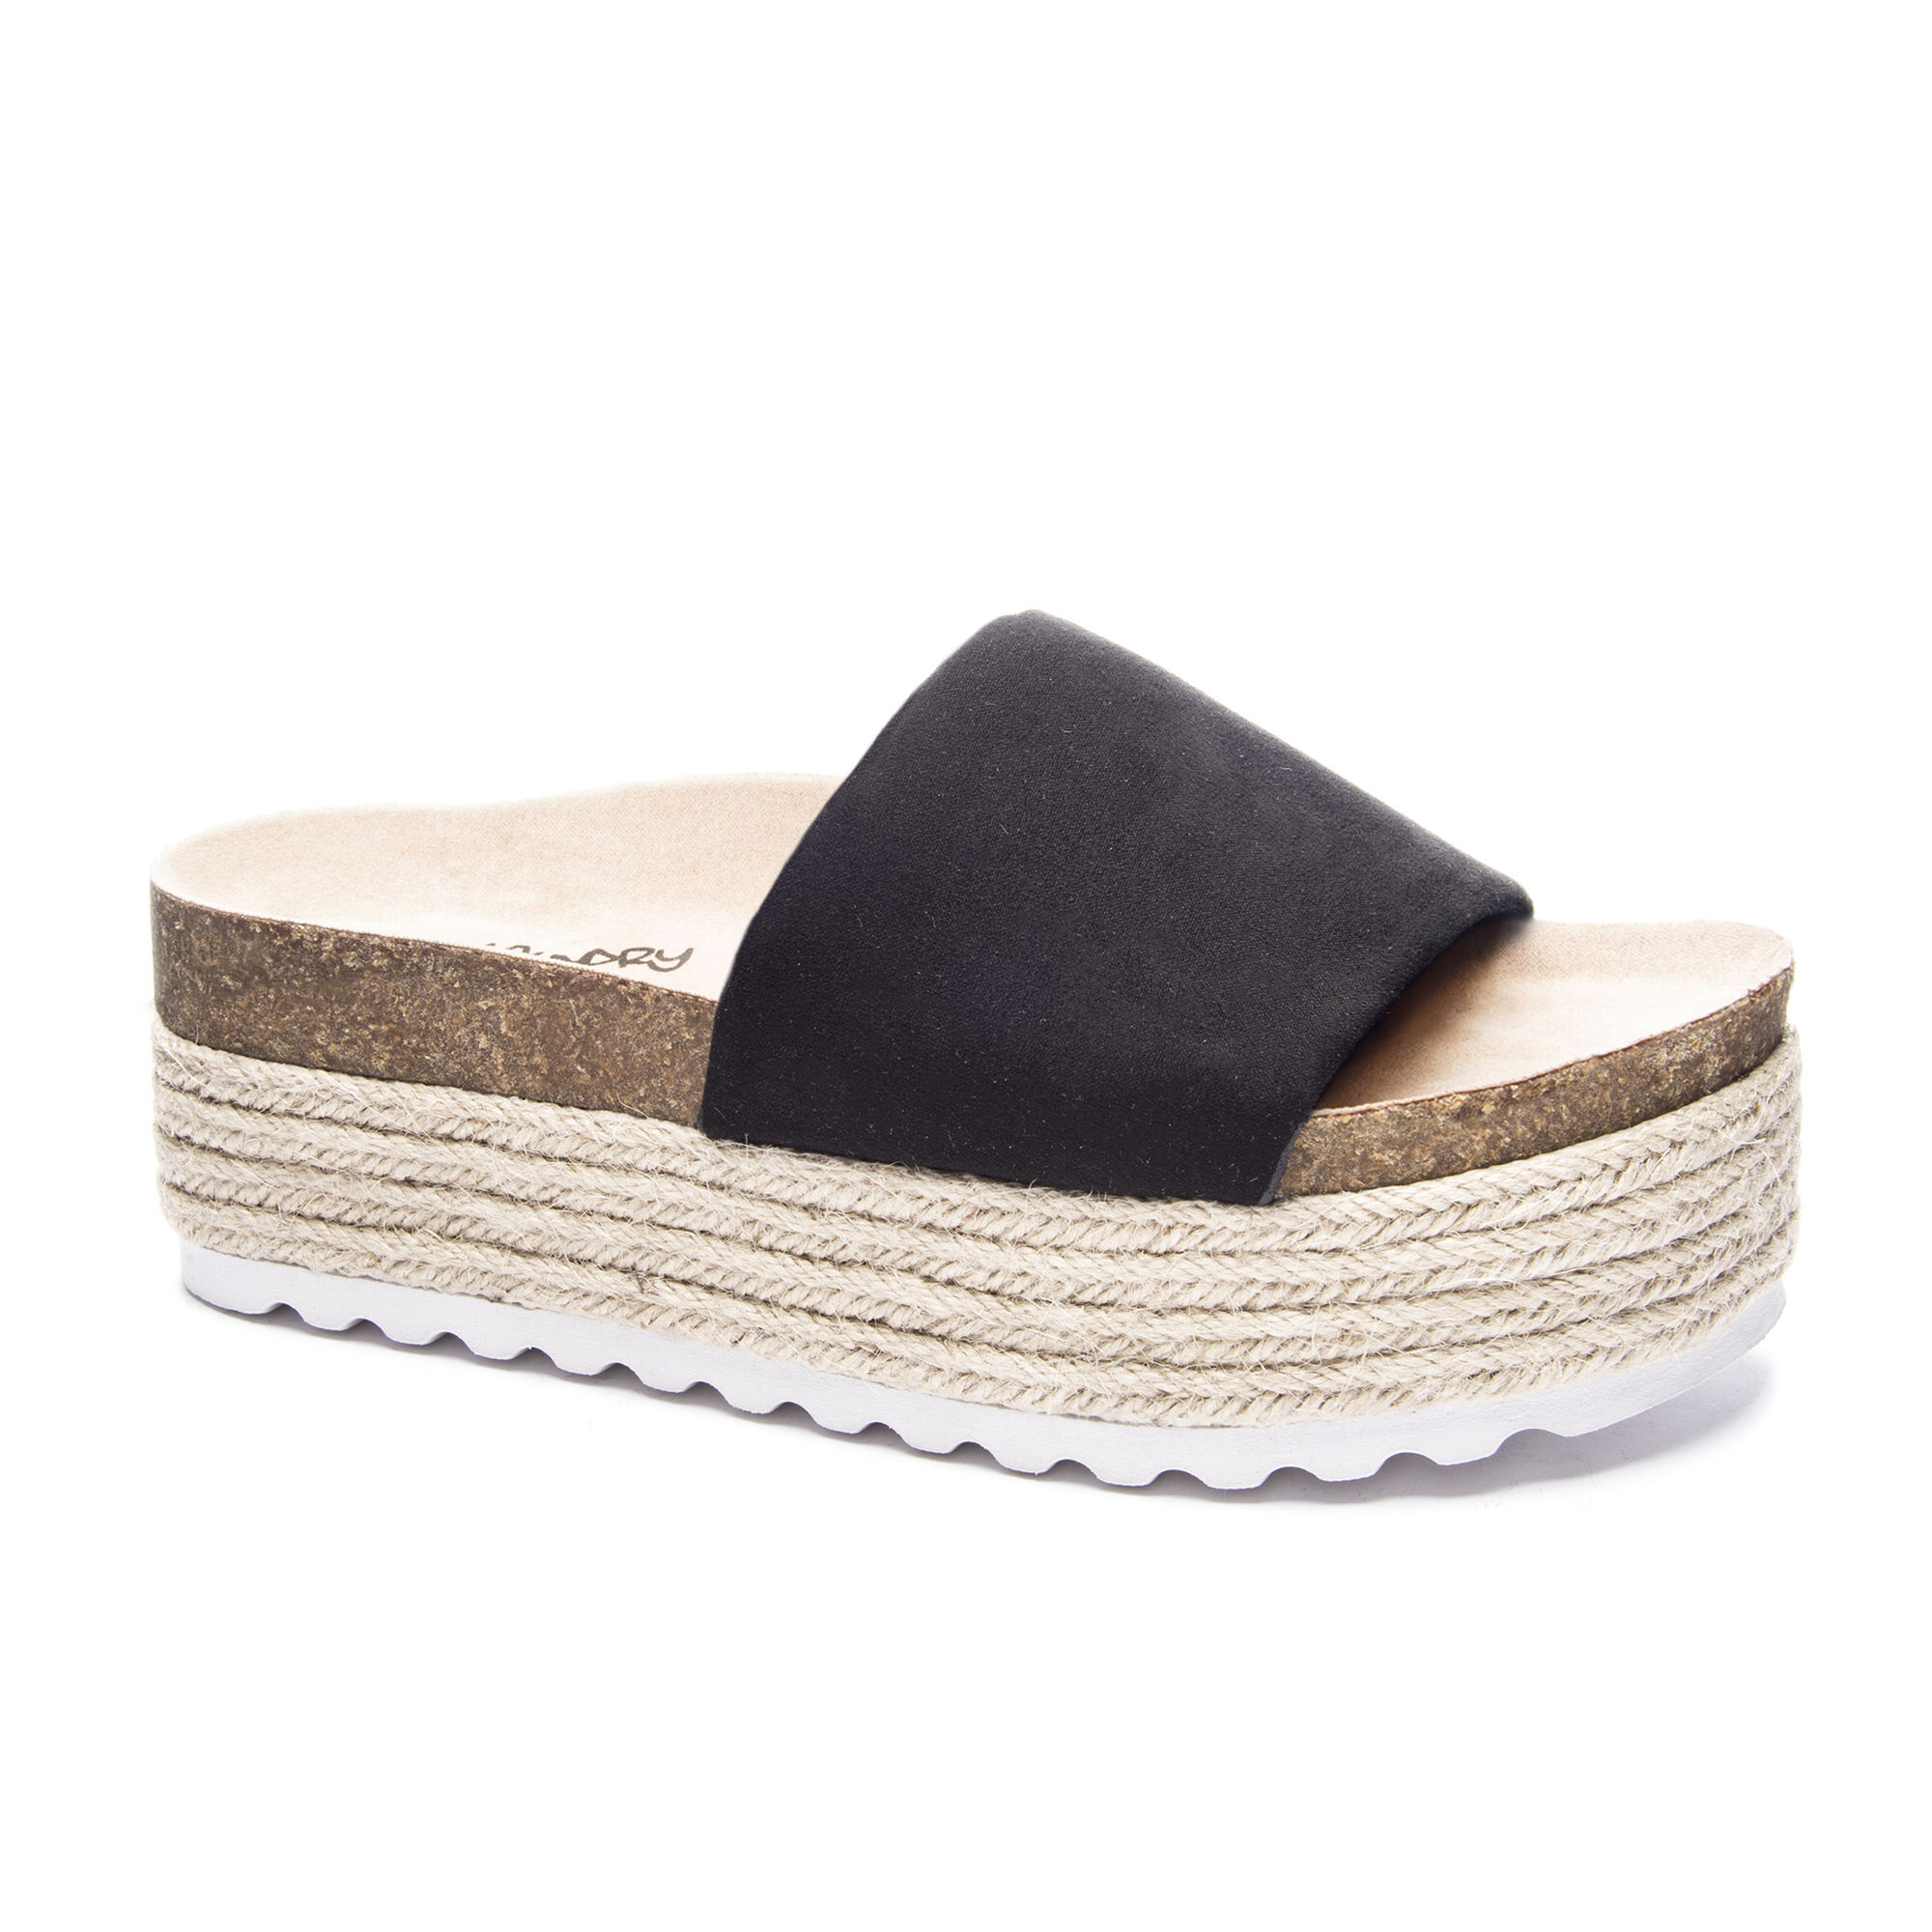 8fa52a1f3 Dirty Laundry Pippa Micro Suede Slide Sandal | Chinese Laundry